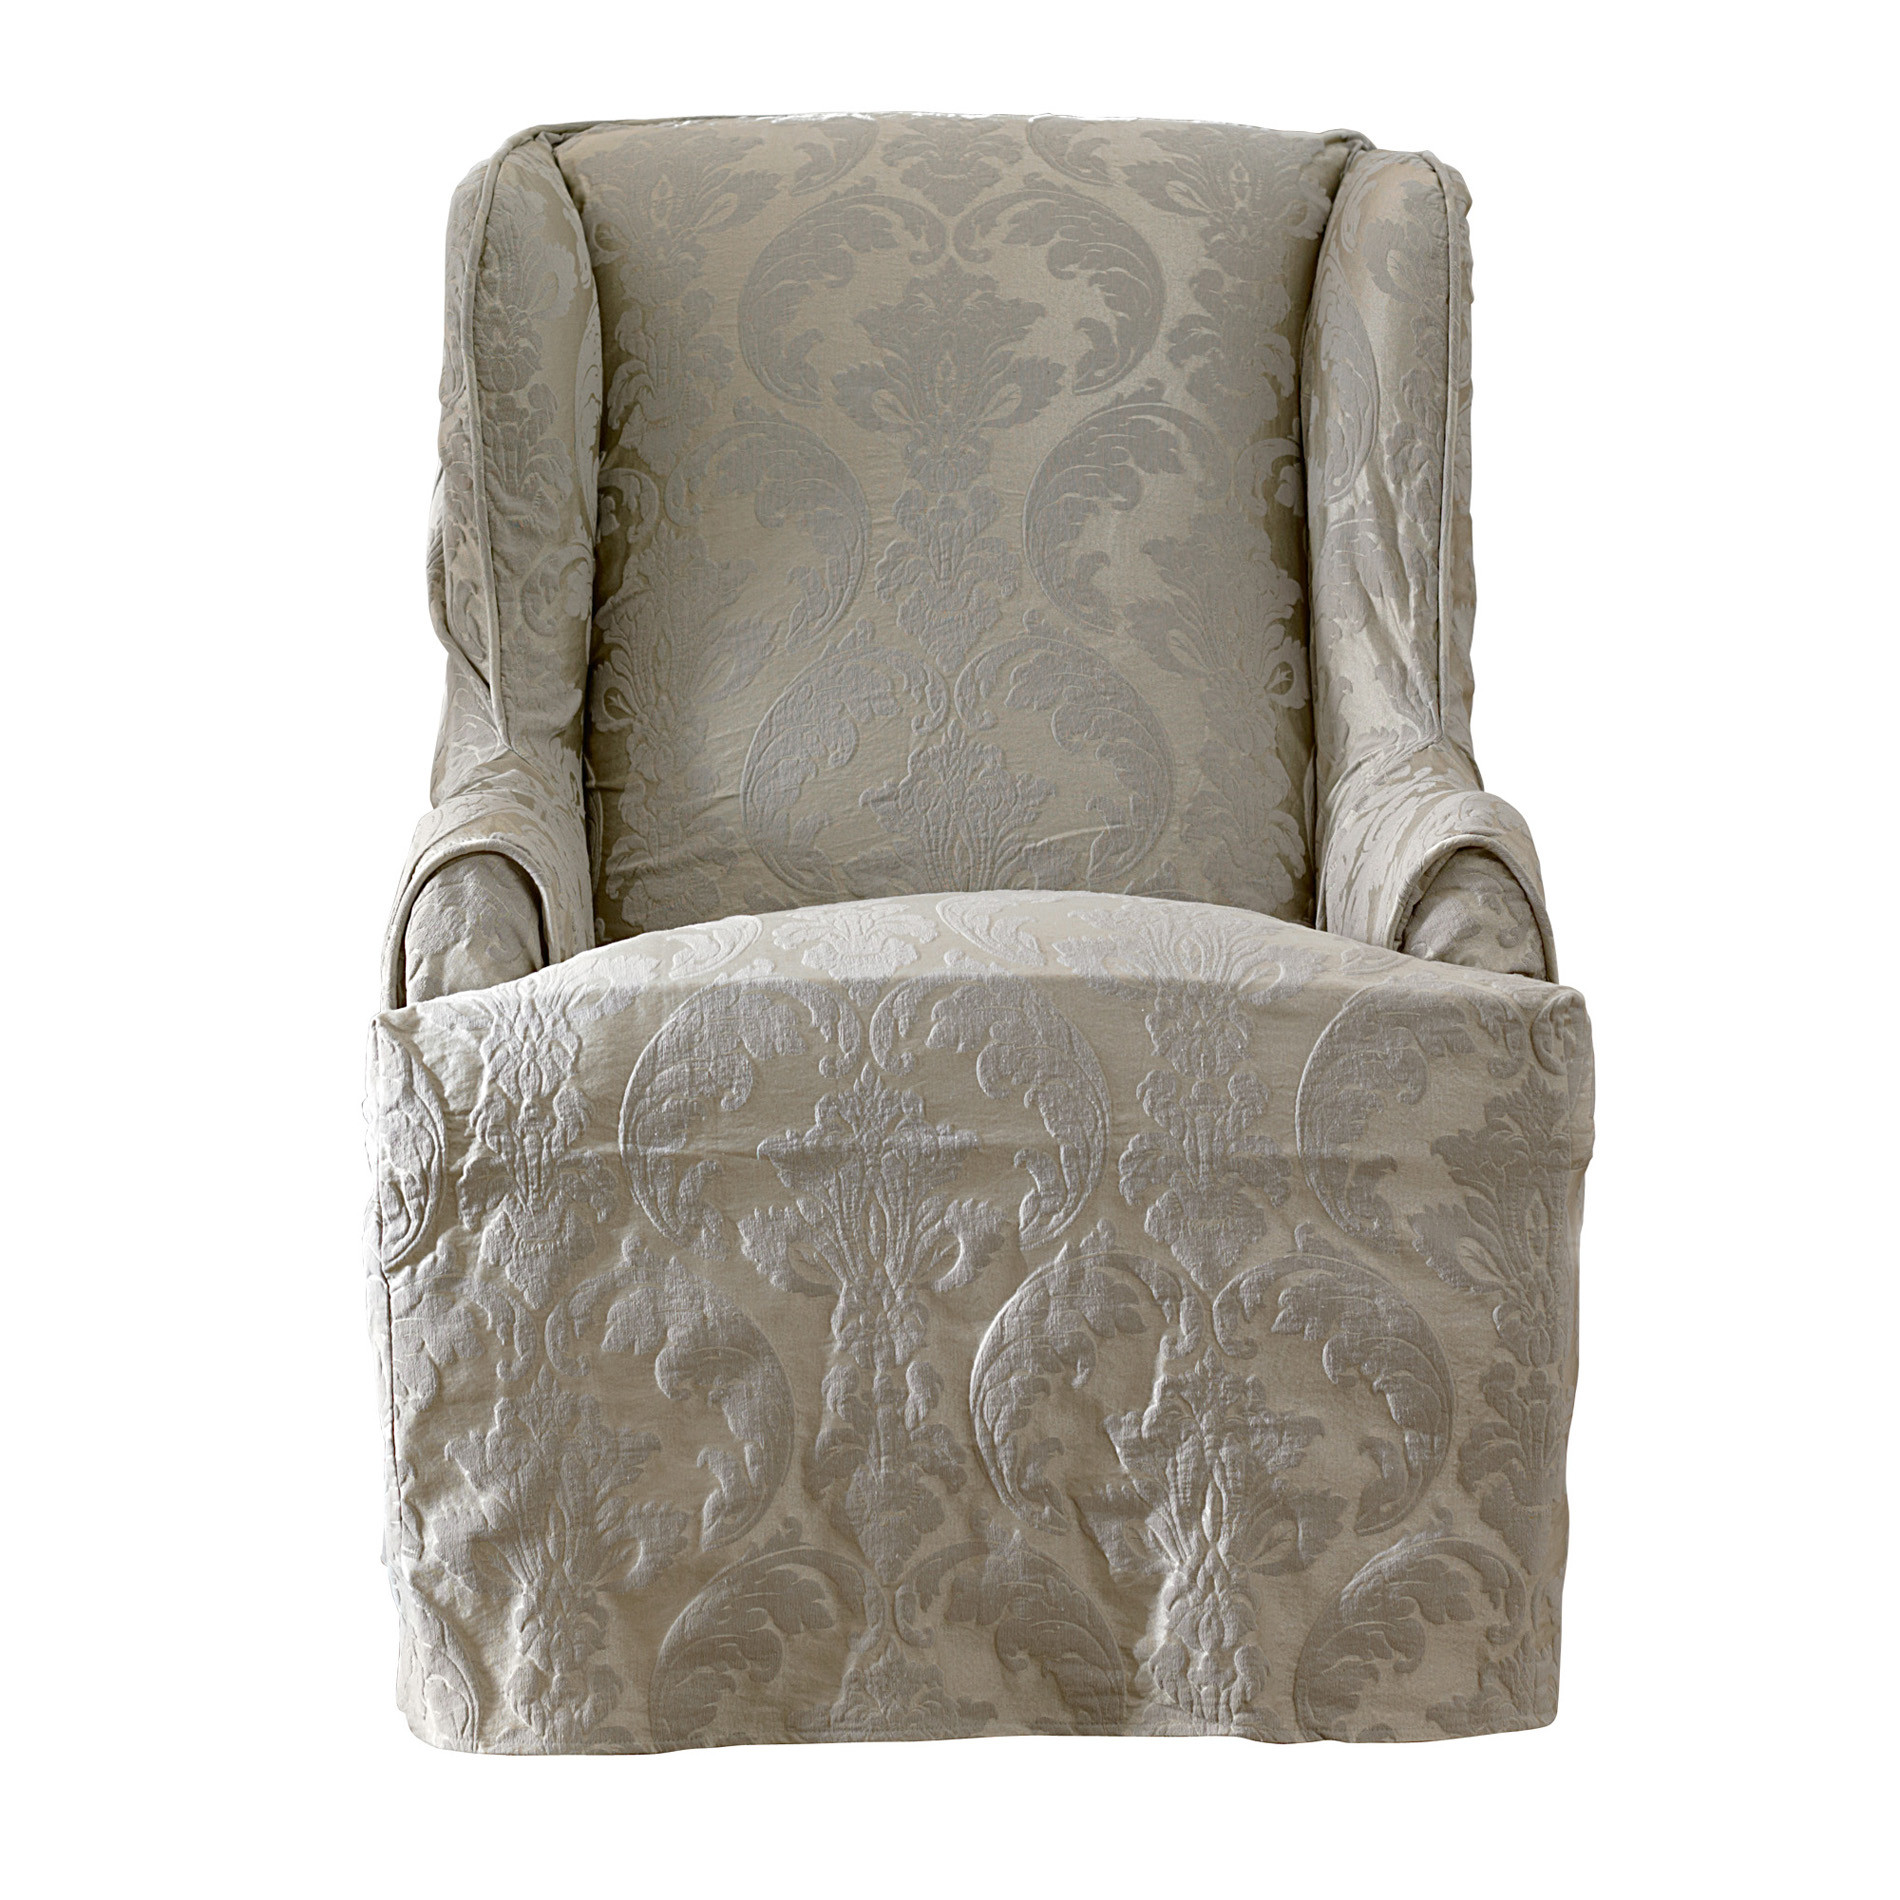 Furniture Oversized Chair Slipcover Sure Fit Sofa Covers